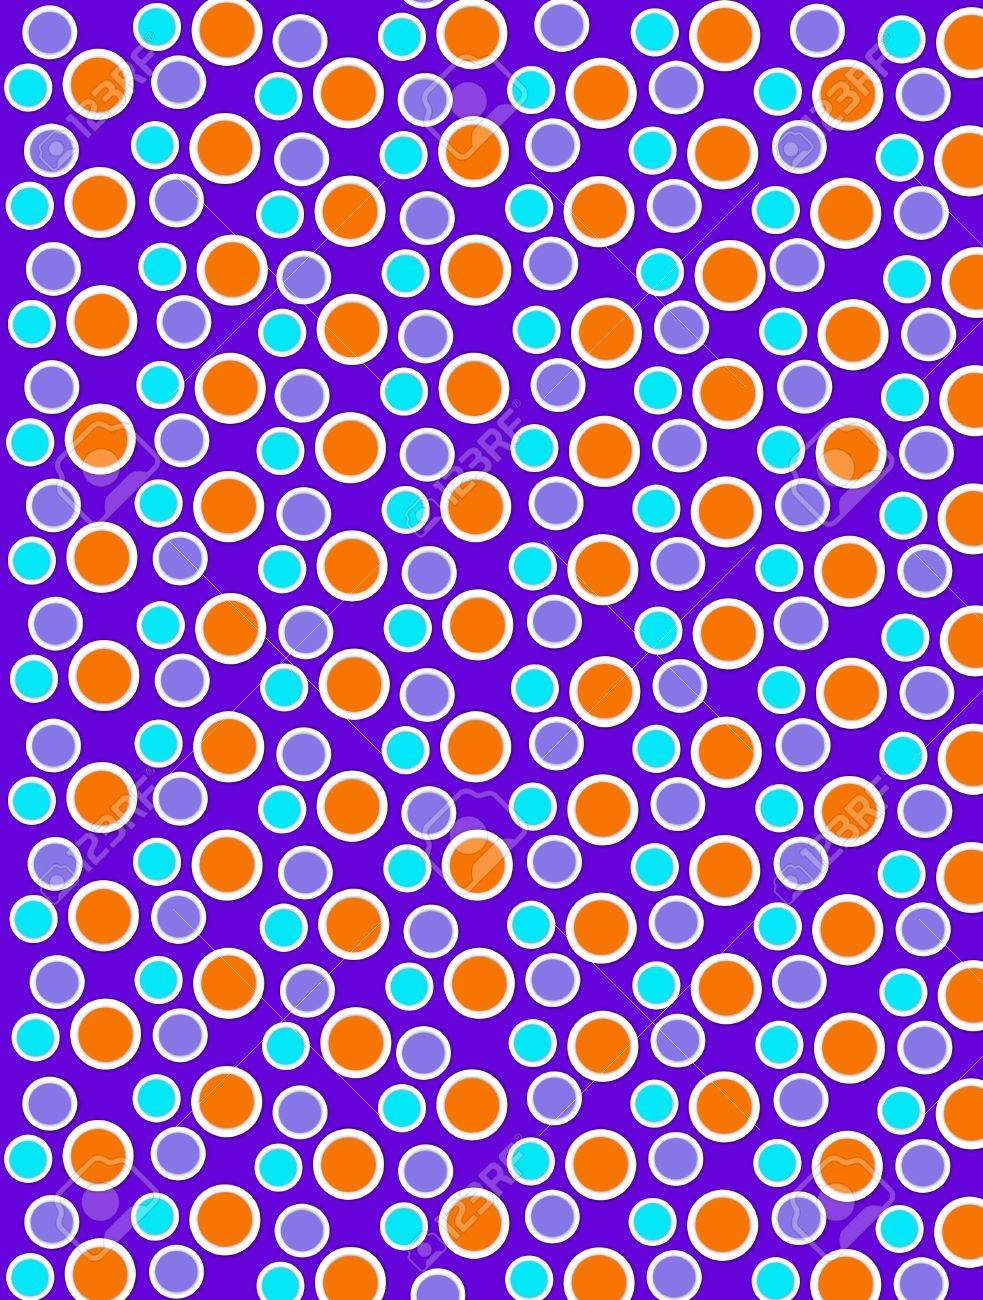 Background image is filled with two layered circles and dots.  White border encircles each polka dot.  Polka dots deep purple background. Stock Photo - 17120705